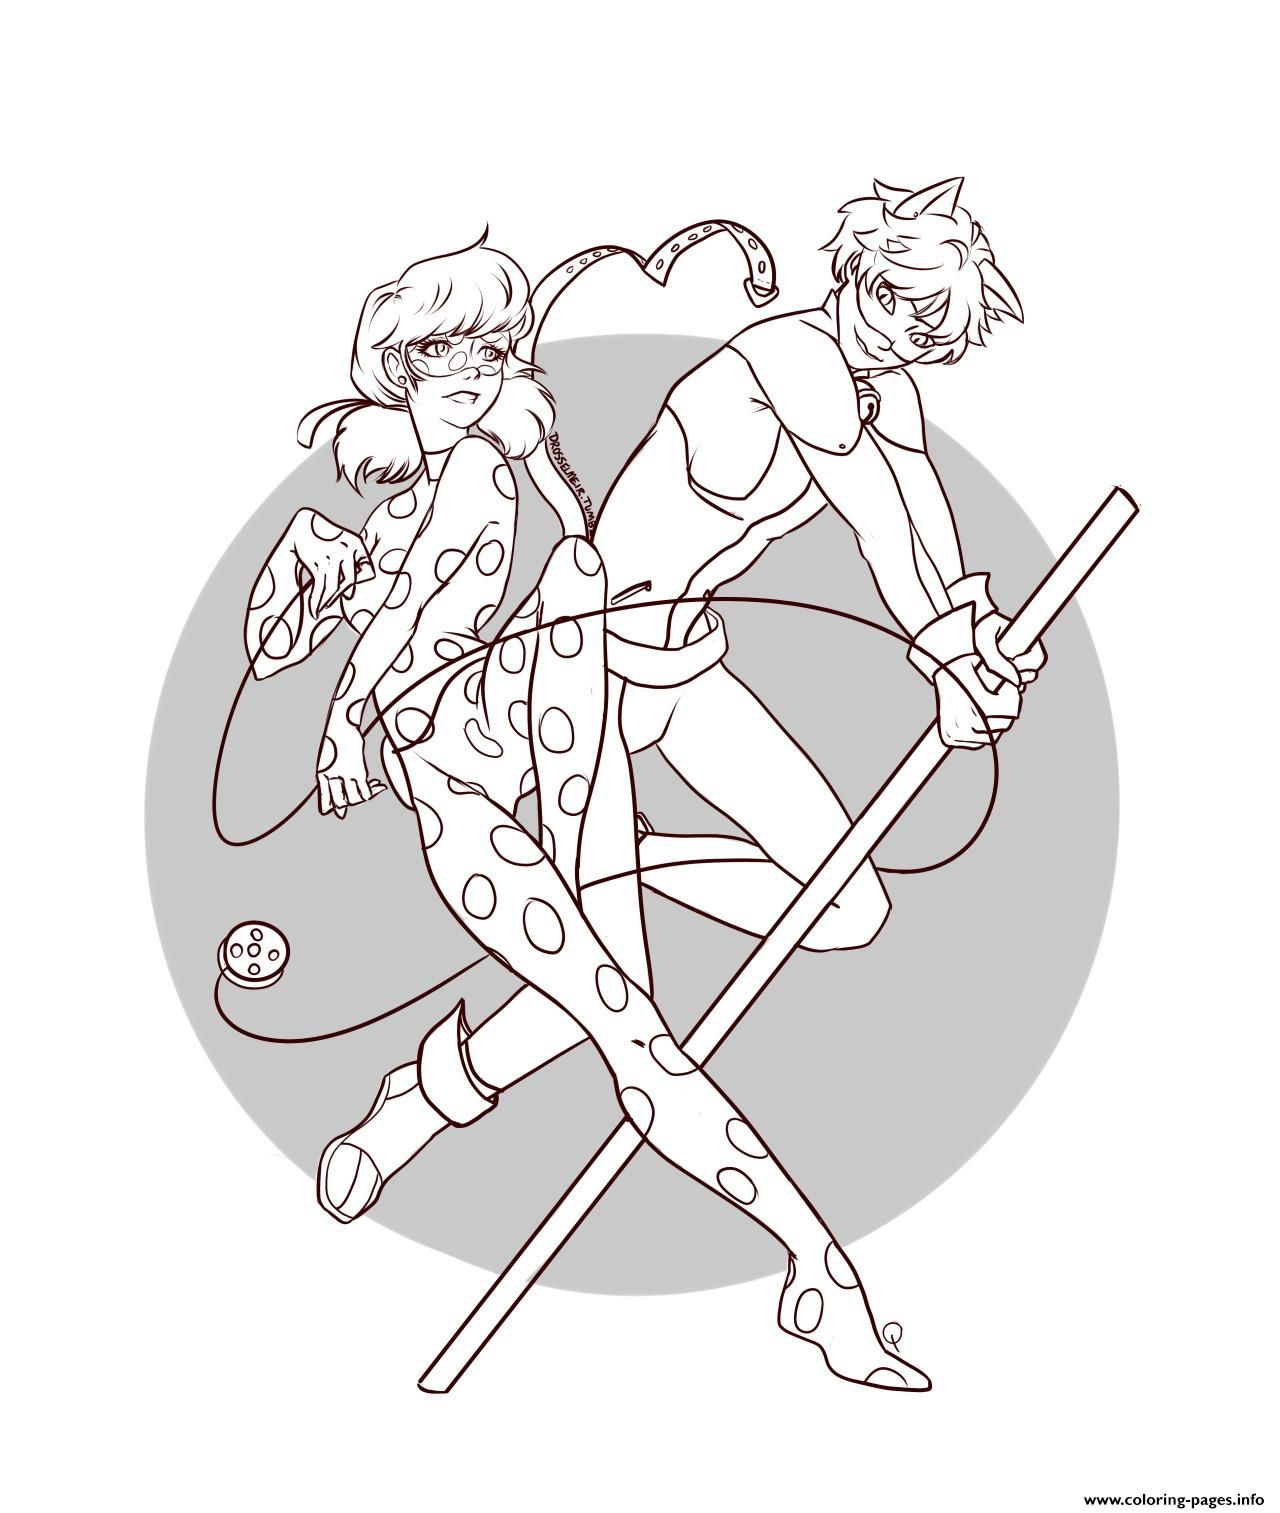 Print Miraculous Ladybug And Cat Noir Team Coloring Pages Ladybug Coloring Page Cool Coloring Pages Cartoon Coloring Pages